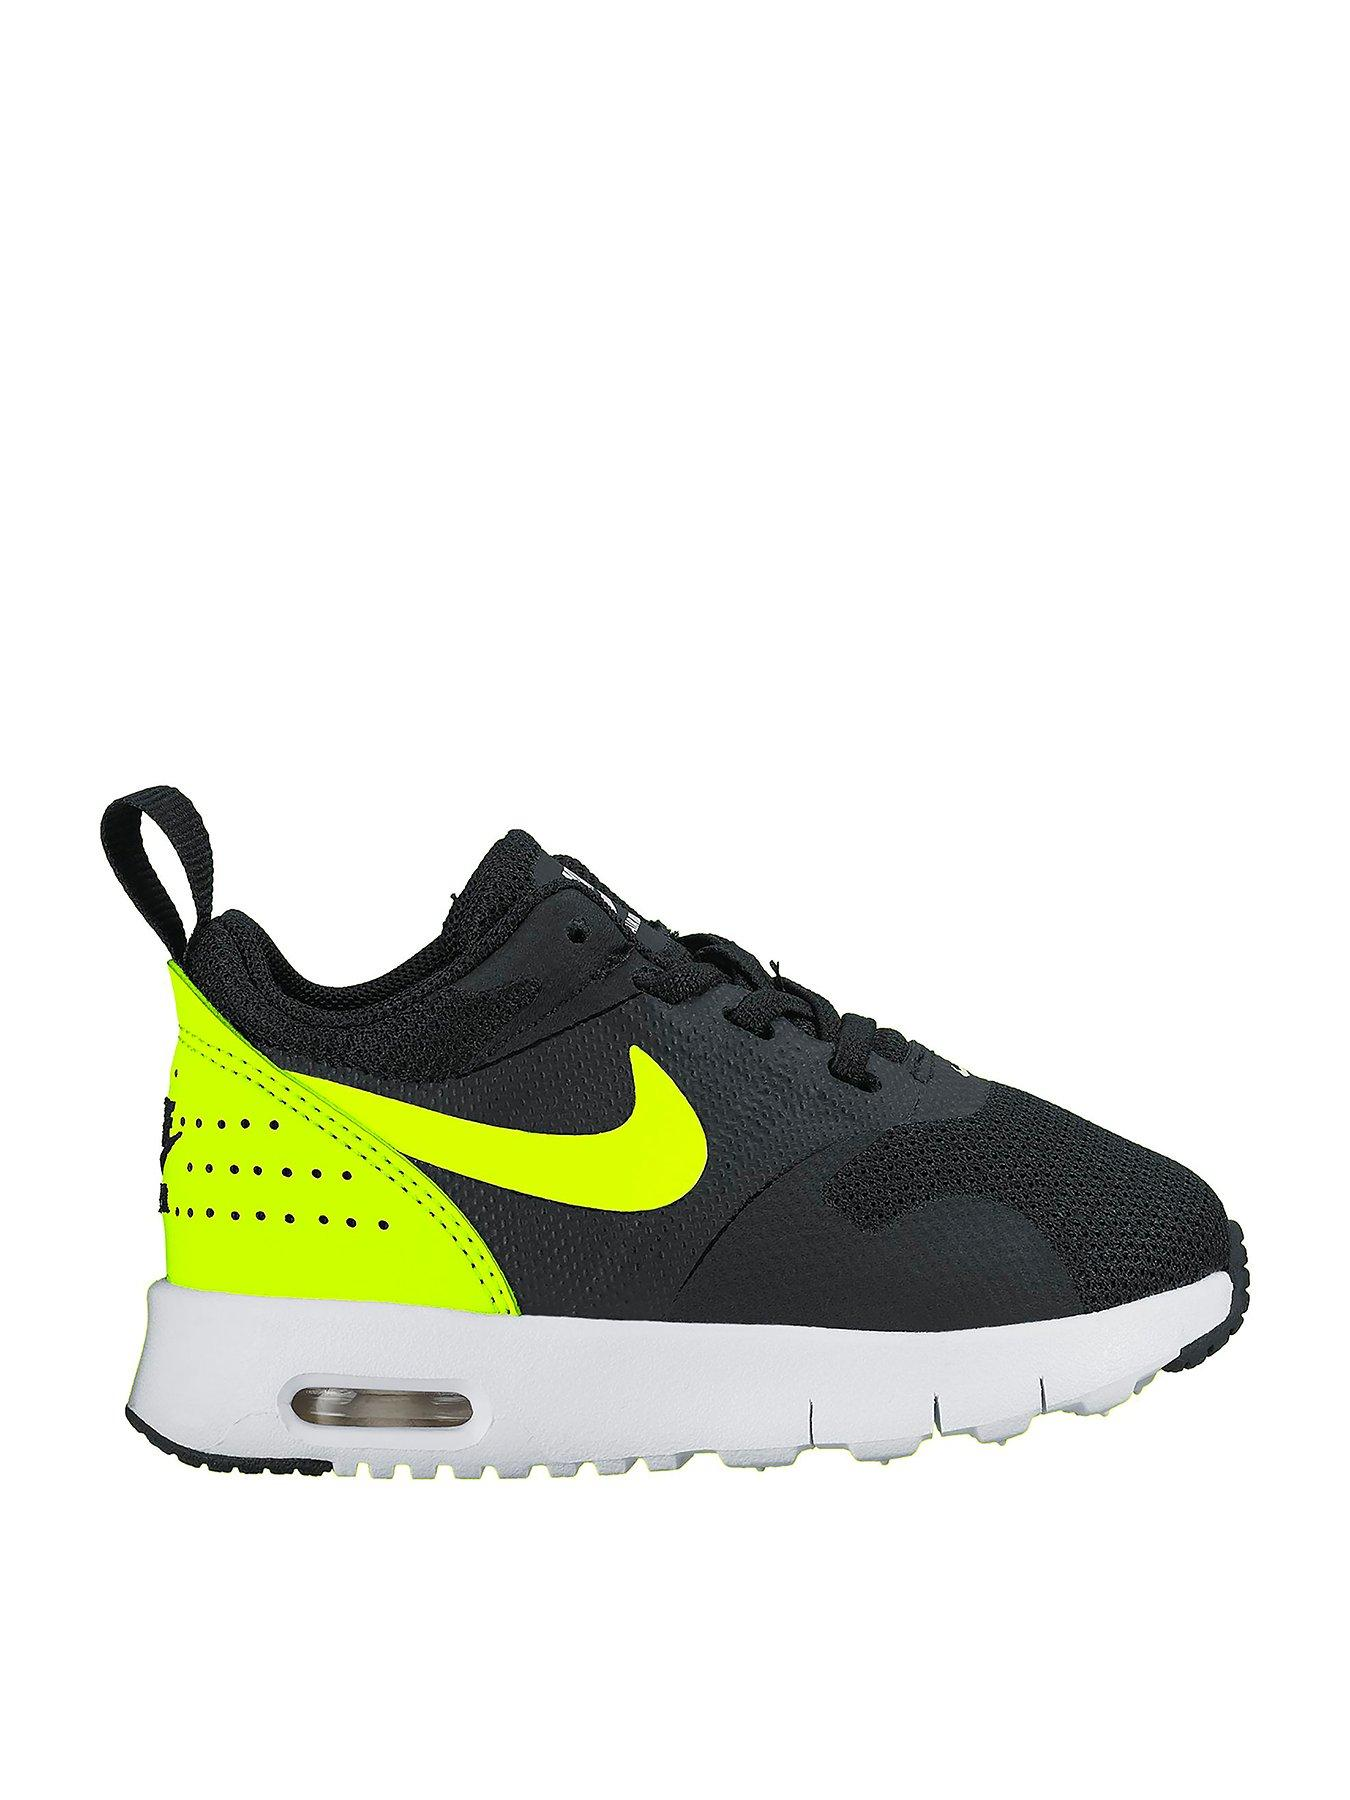 qtyfa Nike Air Max Tavas | Kids & baby sports shoes | Sports & leisure